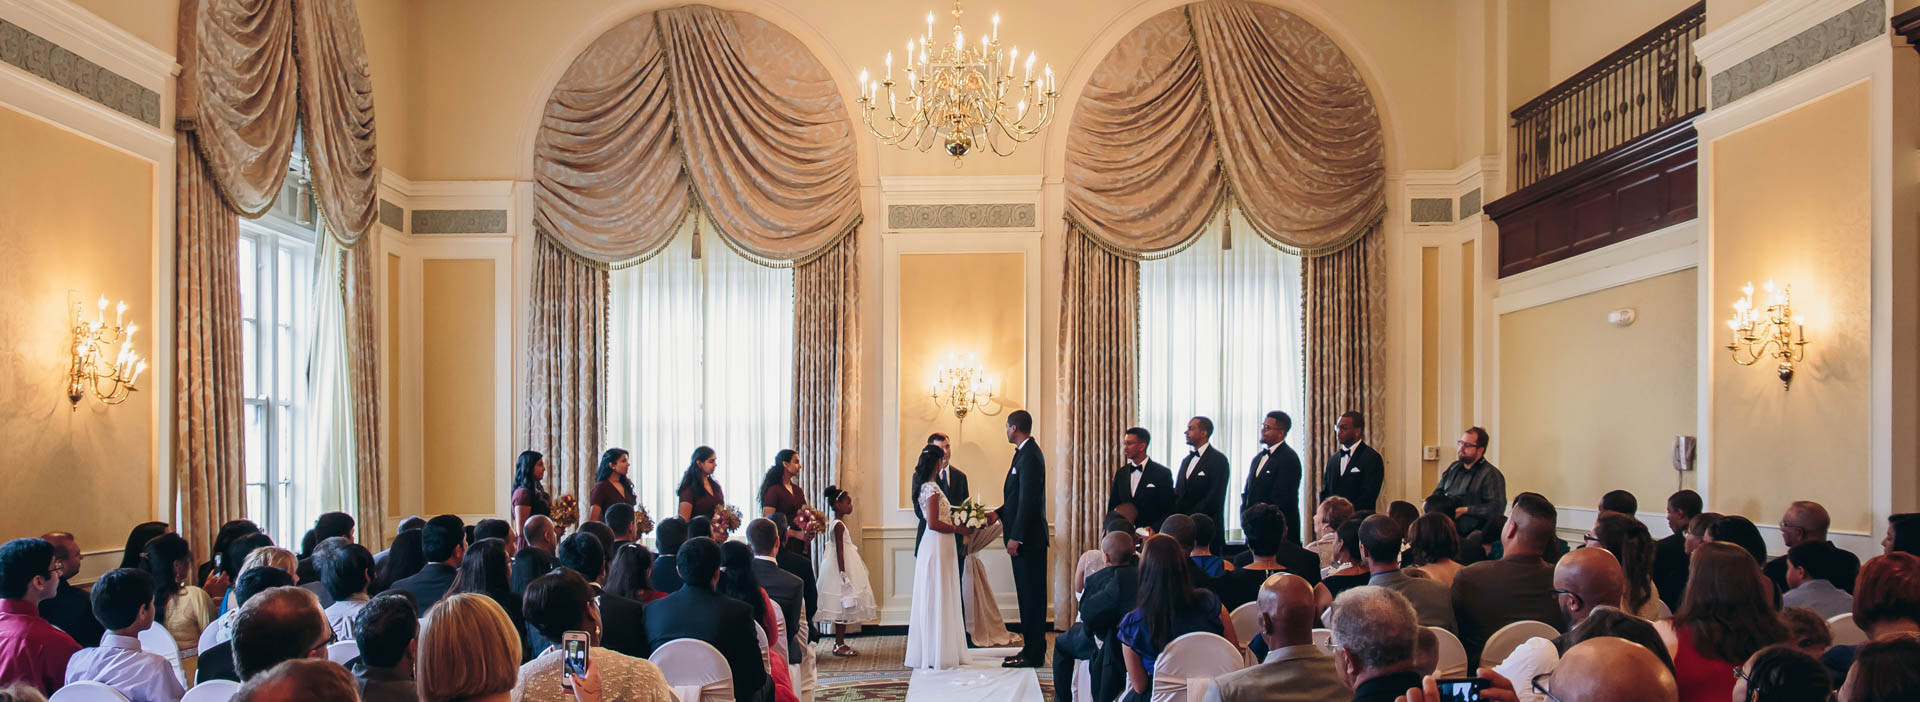 Francis Marion Hotel Ceremony Photography